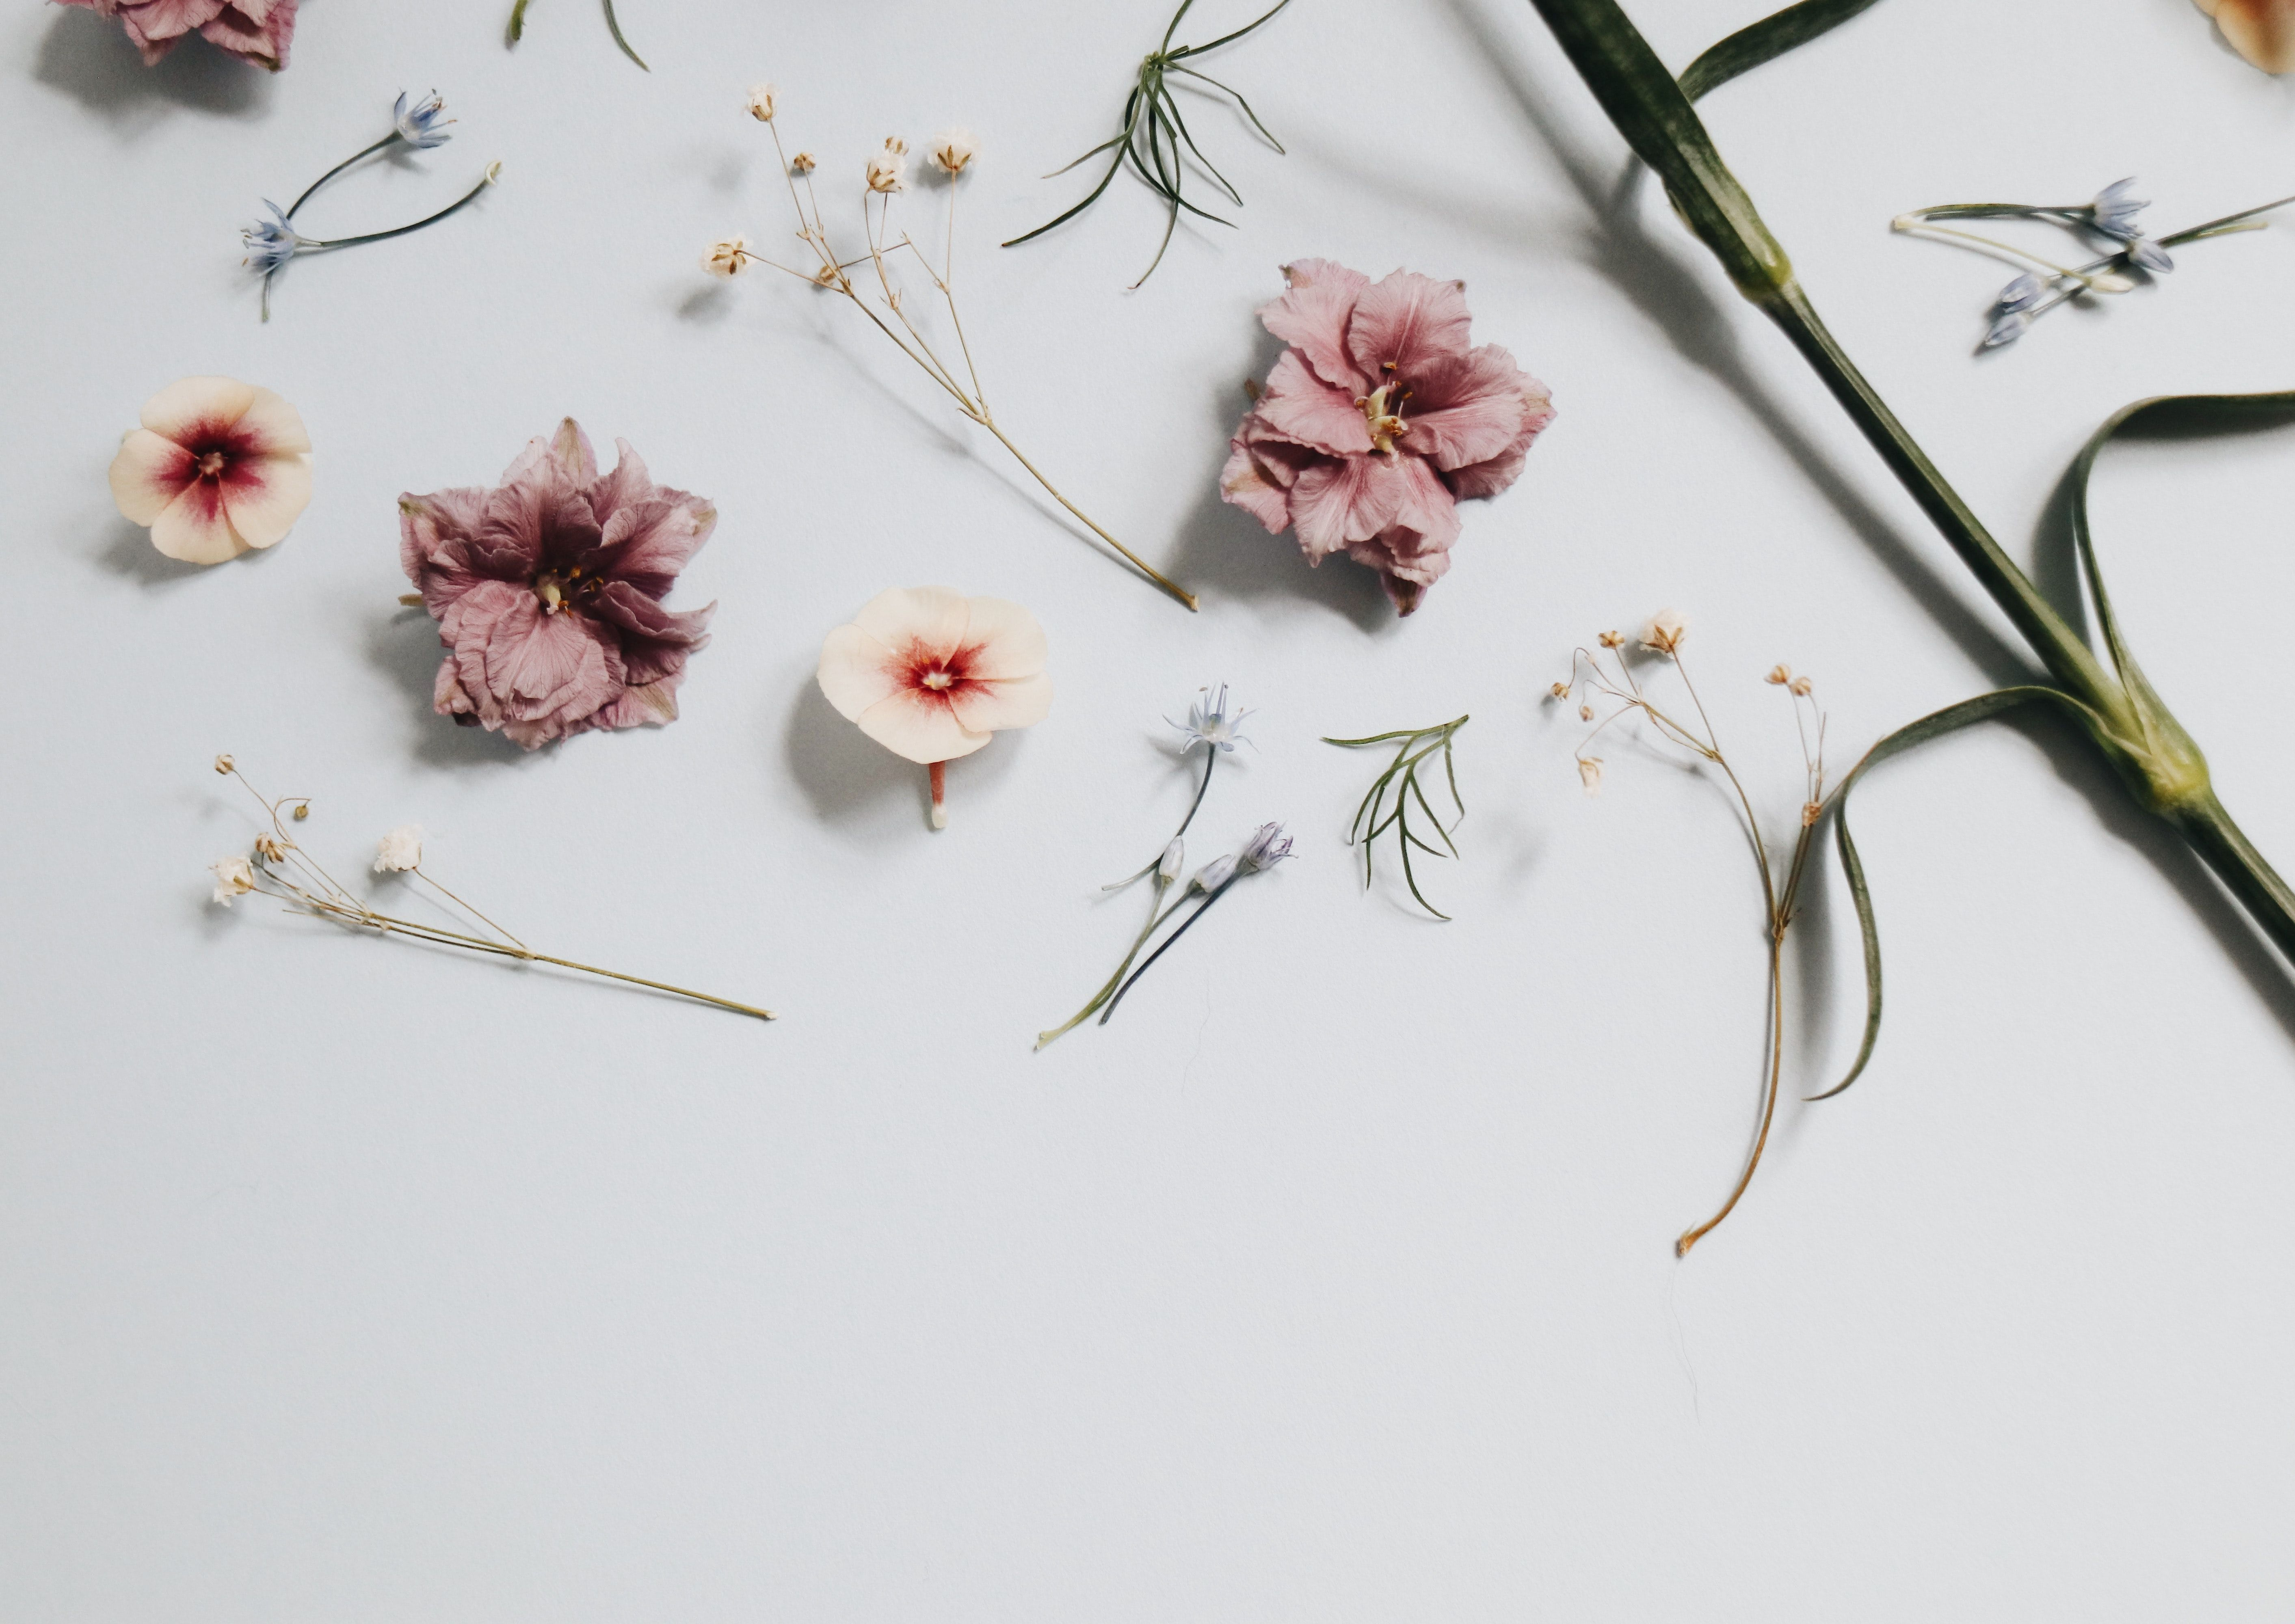 Hd wallpapers and background images Minimalist Floral Laptop Wallpapers - Wallpaper Cave